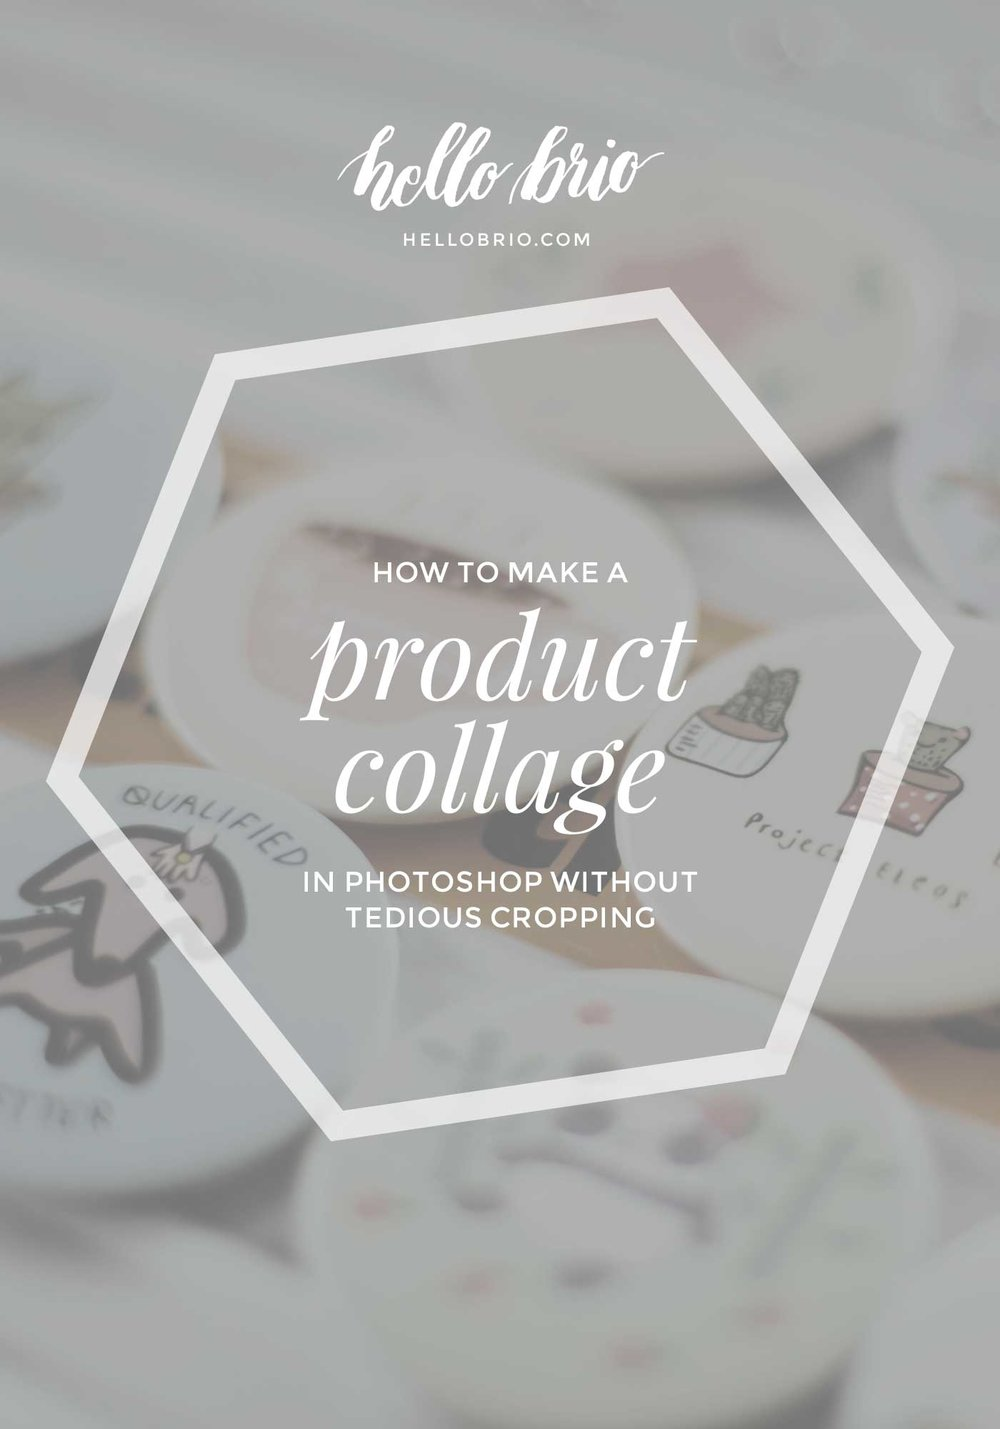 How to create your own product collage in Photoshop quickly and easily